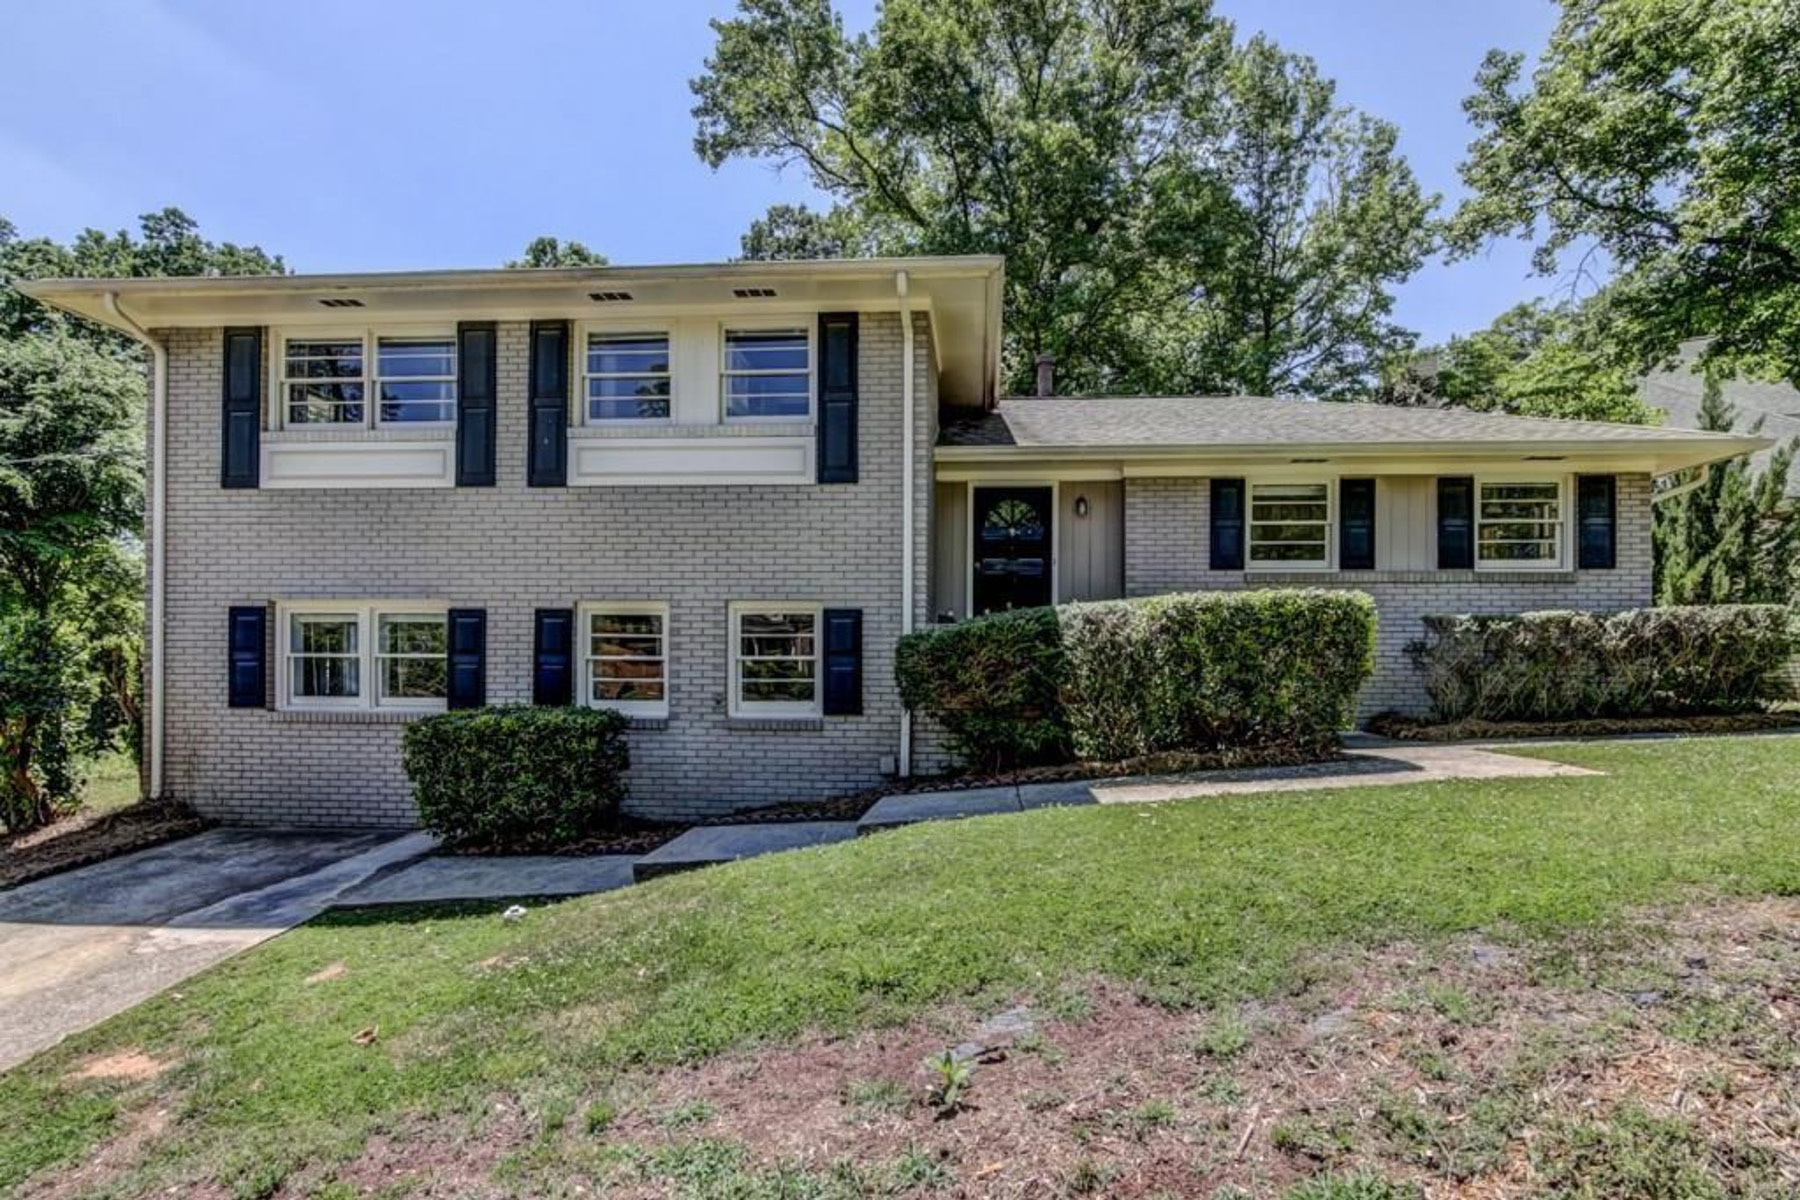 Single Family Home for Rent at Location! Location! Location! 3956 Pineview Drive Smyrna, Georgia 30080 United States